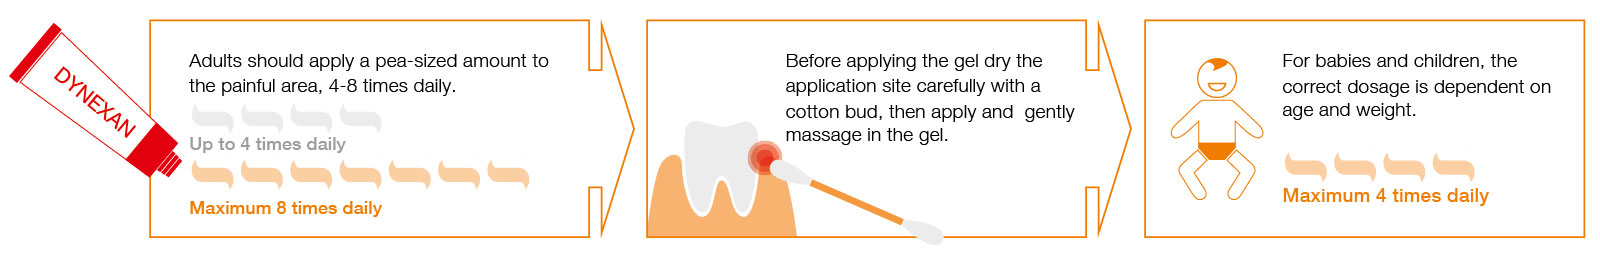 DYNEXAN MOUTH GEL Application Tips